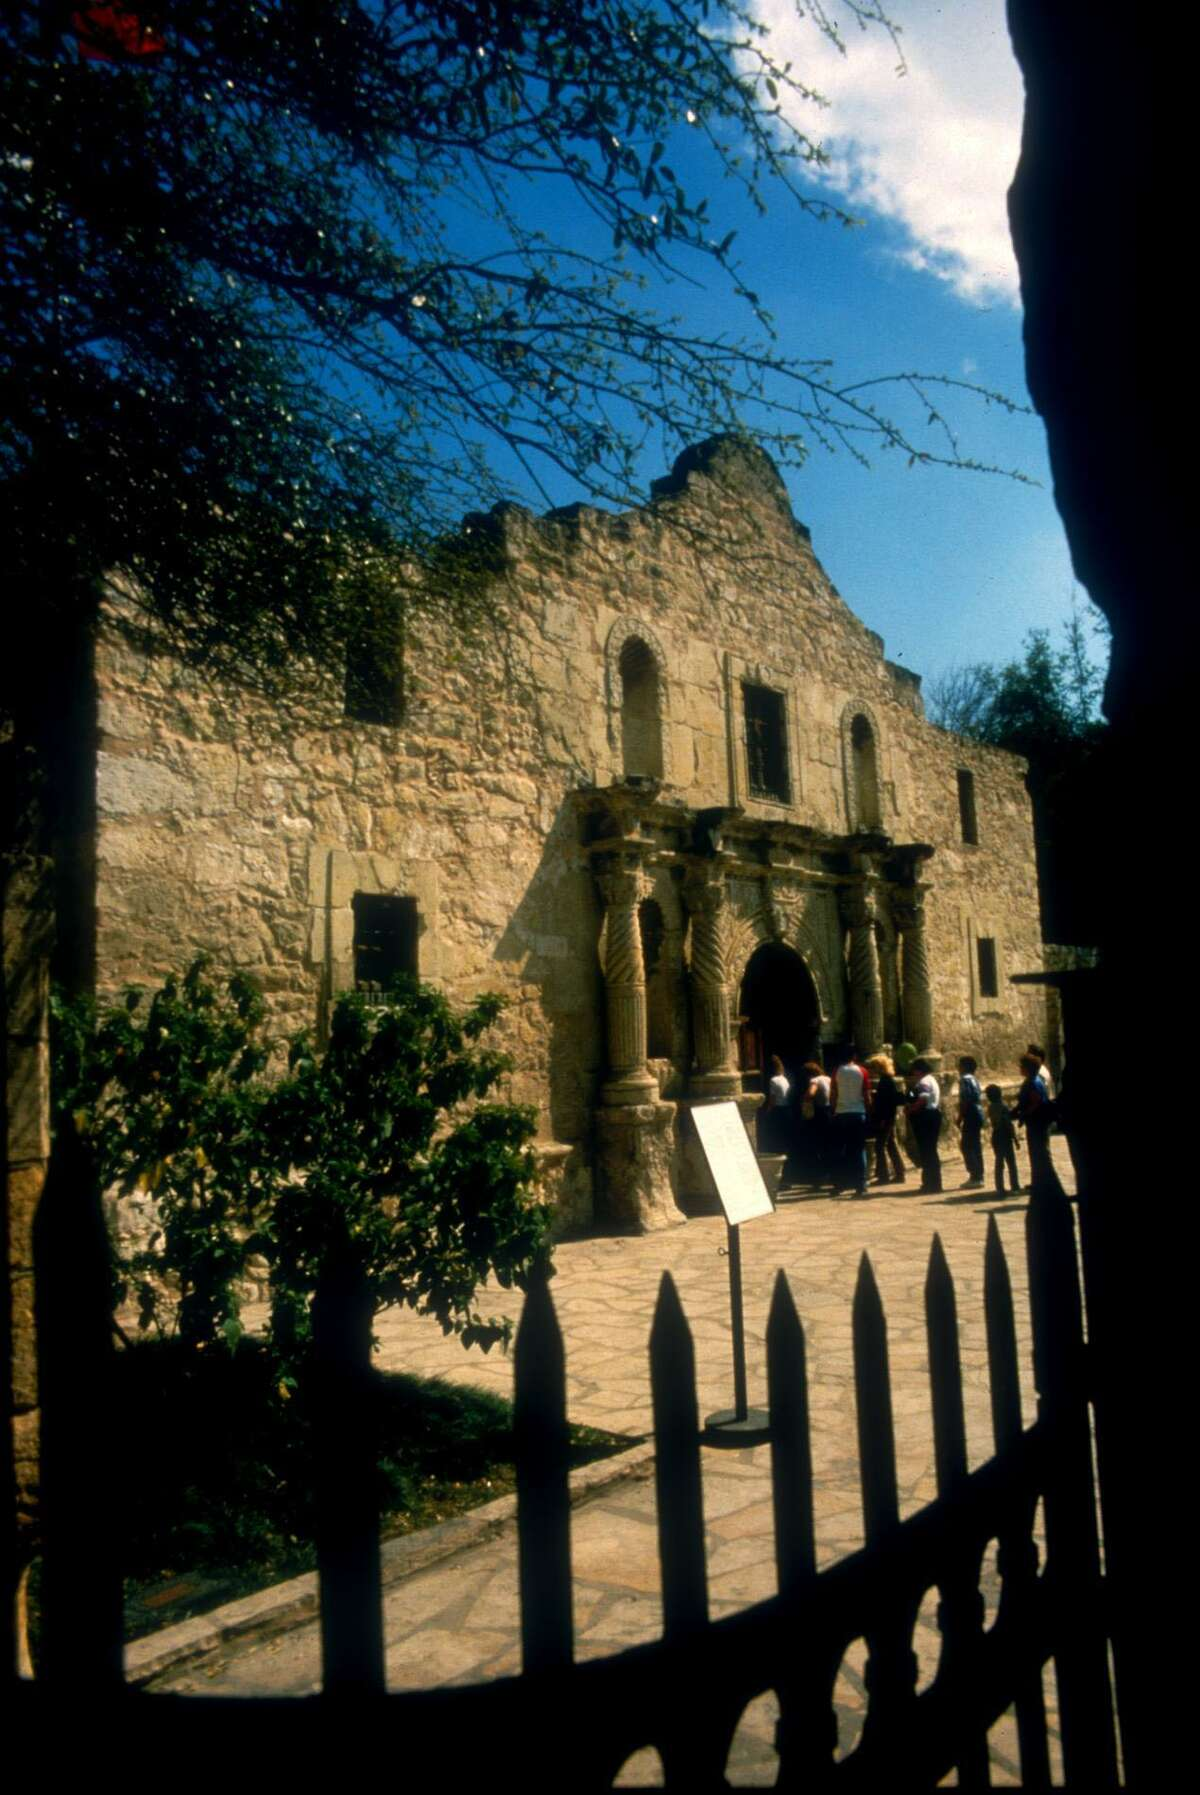 With 2.5 million visitors a year, the Alamo is the top tourist attraction in Texas. The Alamo was formally named Mission San Antonio de Valero. Father Benito Fernández de Santa Ana was instrumental in developing the mission and the town that became San Antonio.